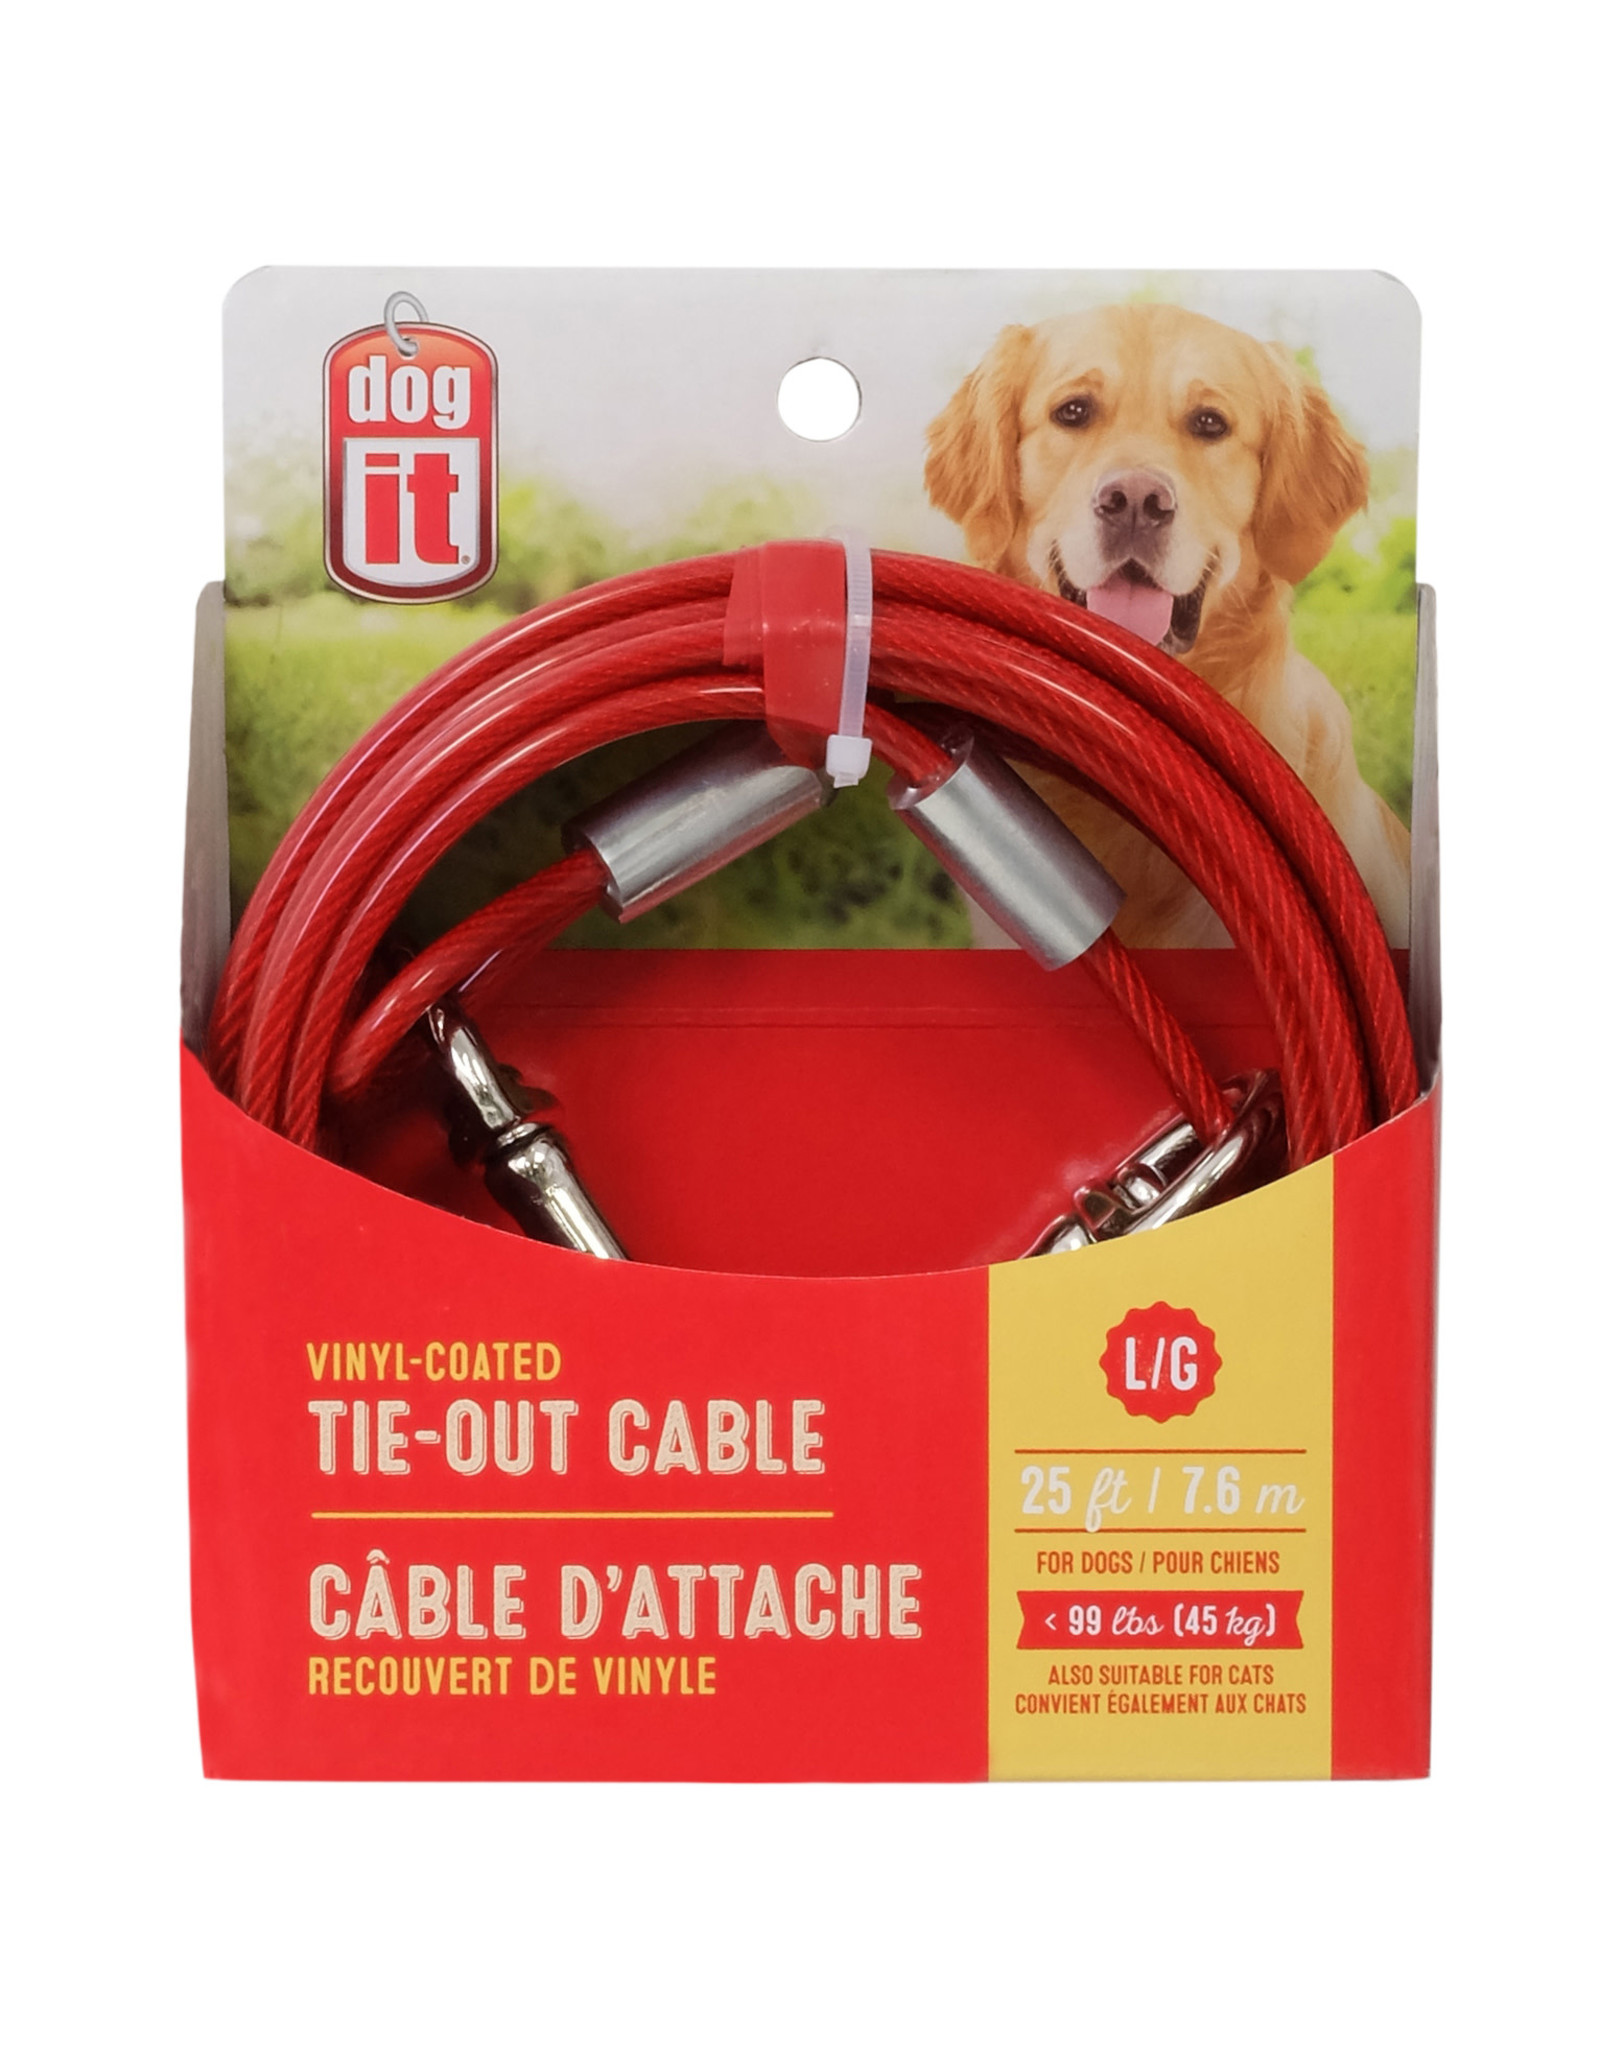 DO - Dogit Dogit Tie-Out Cable - Red - Large - 7.6 m (25 ft)